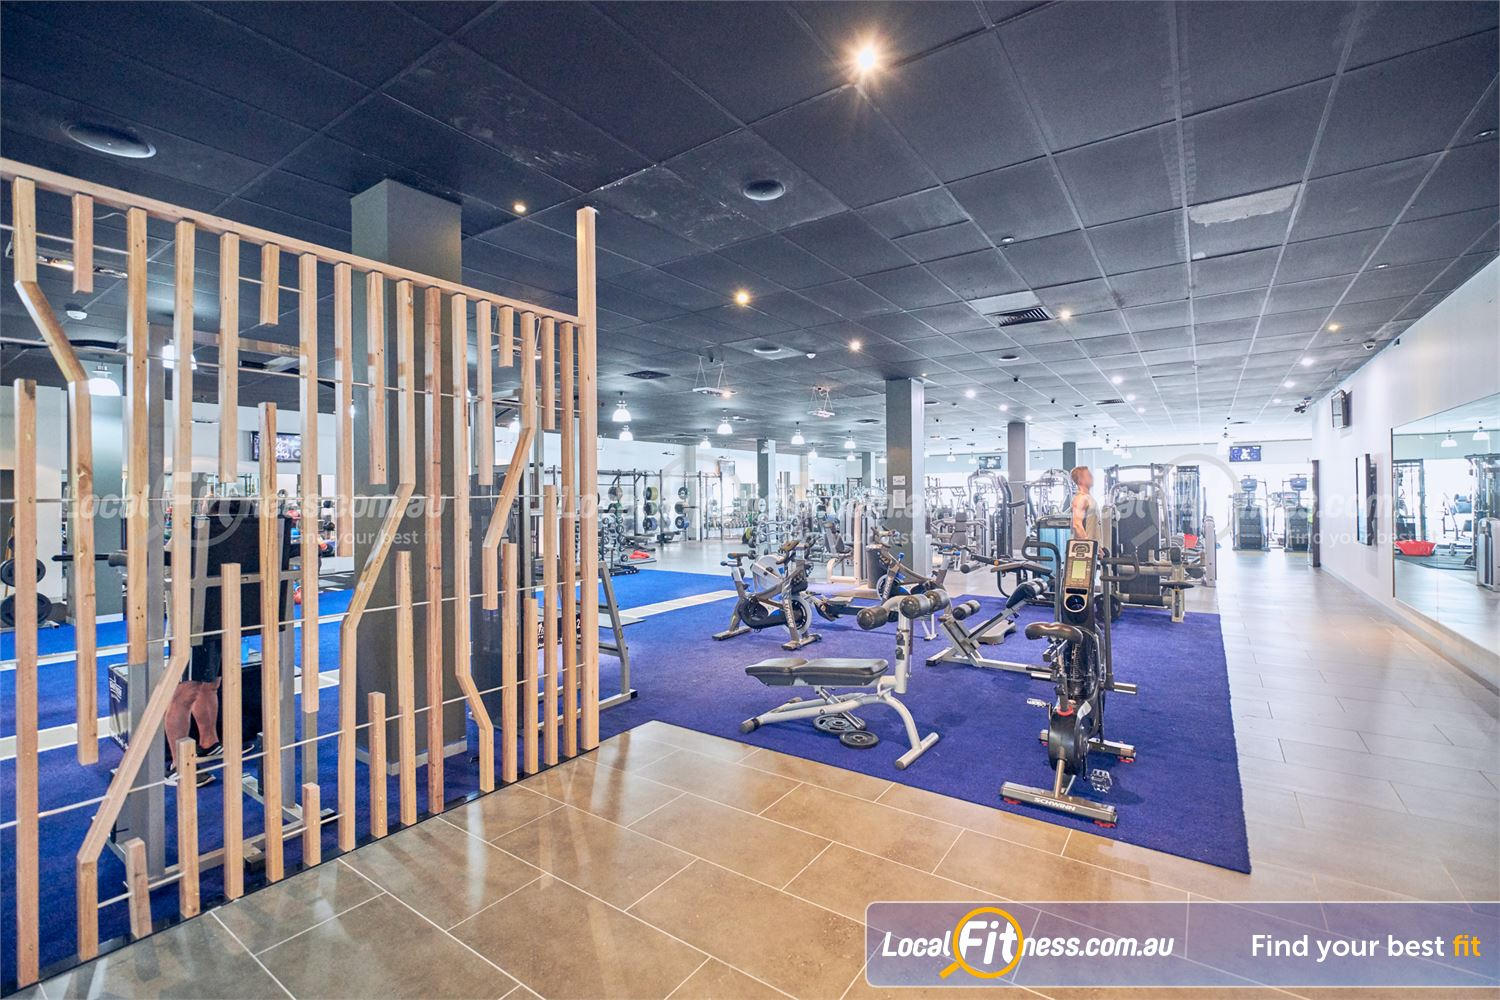 Goodlife Health Clubs Knox City Wantirna South Welcome to the spacious 24 hour Wantirna South gym in Knox City.